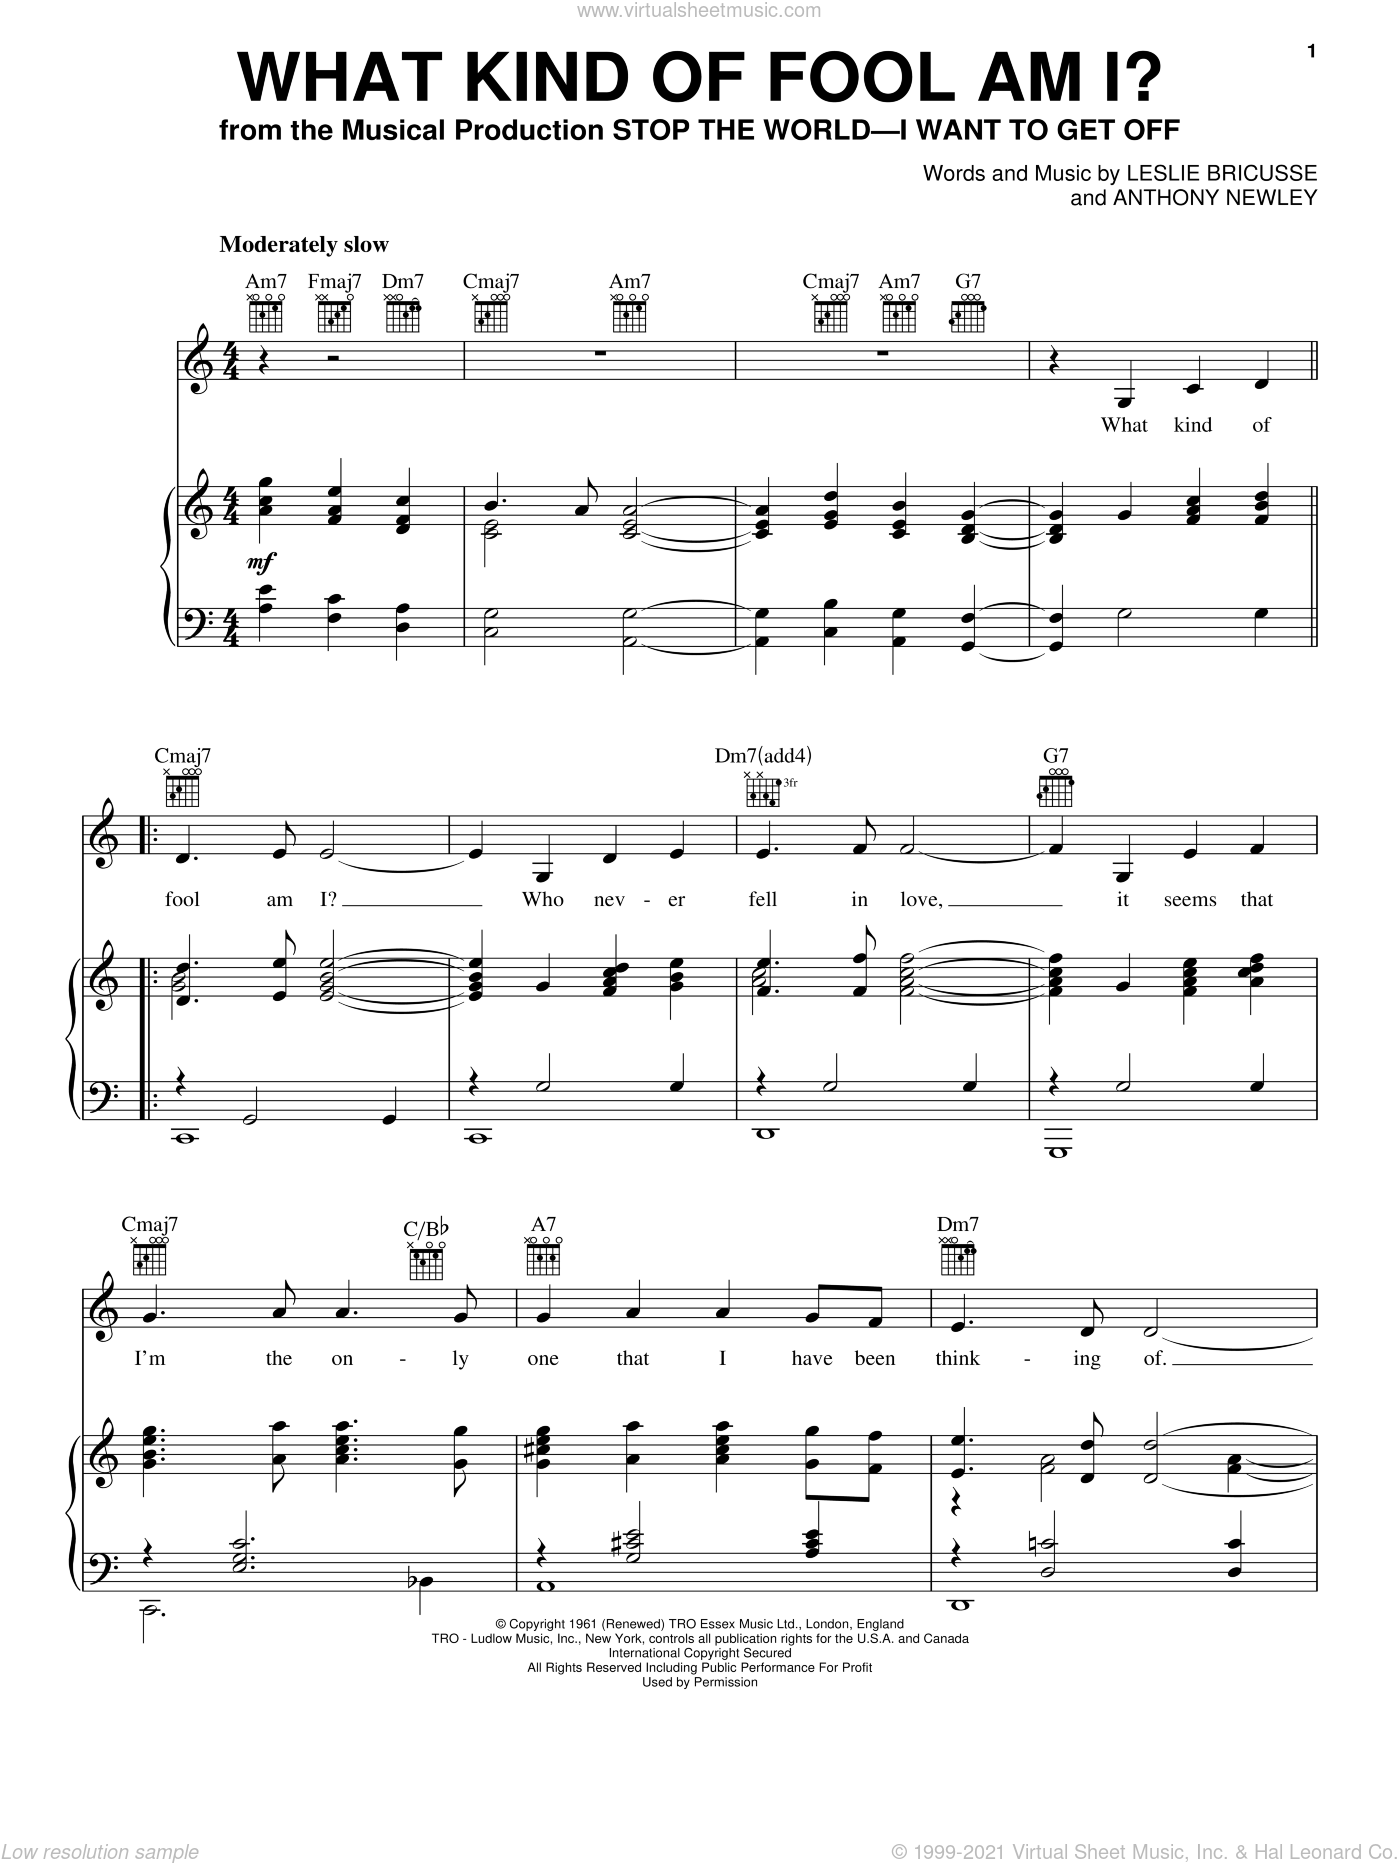 What Kind Of Fool Am I? sheet music for voice, piano or guitar by Anthony Newley